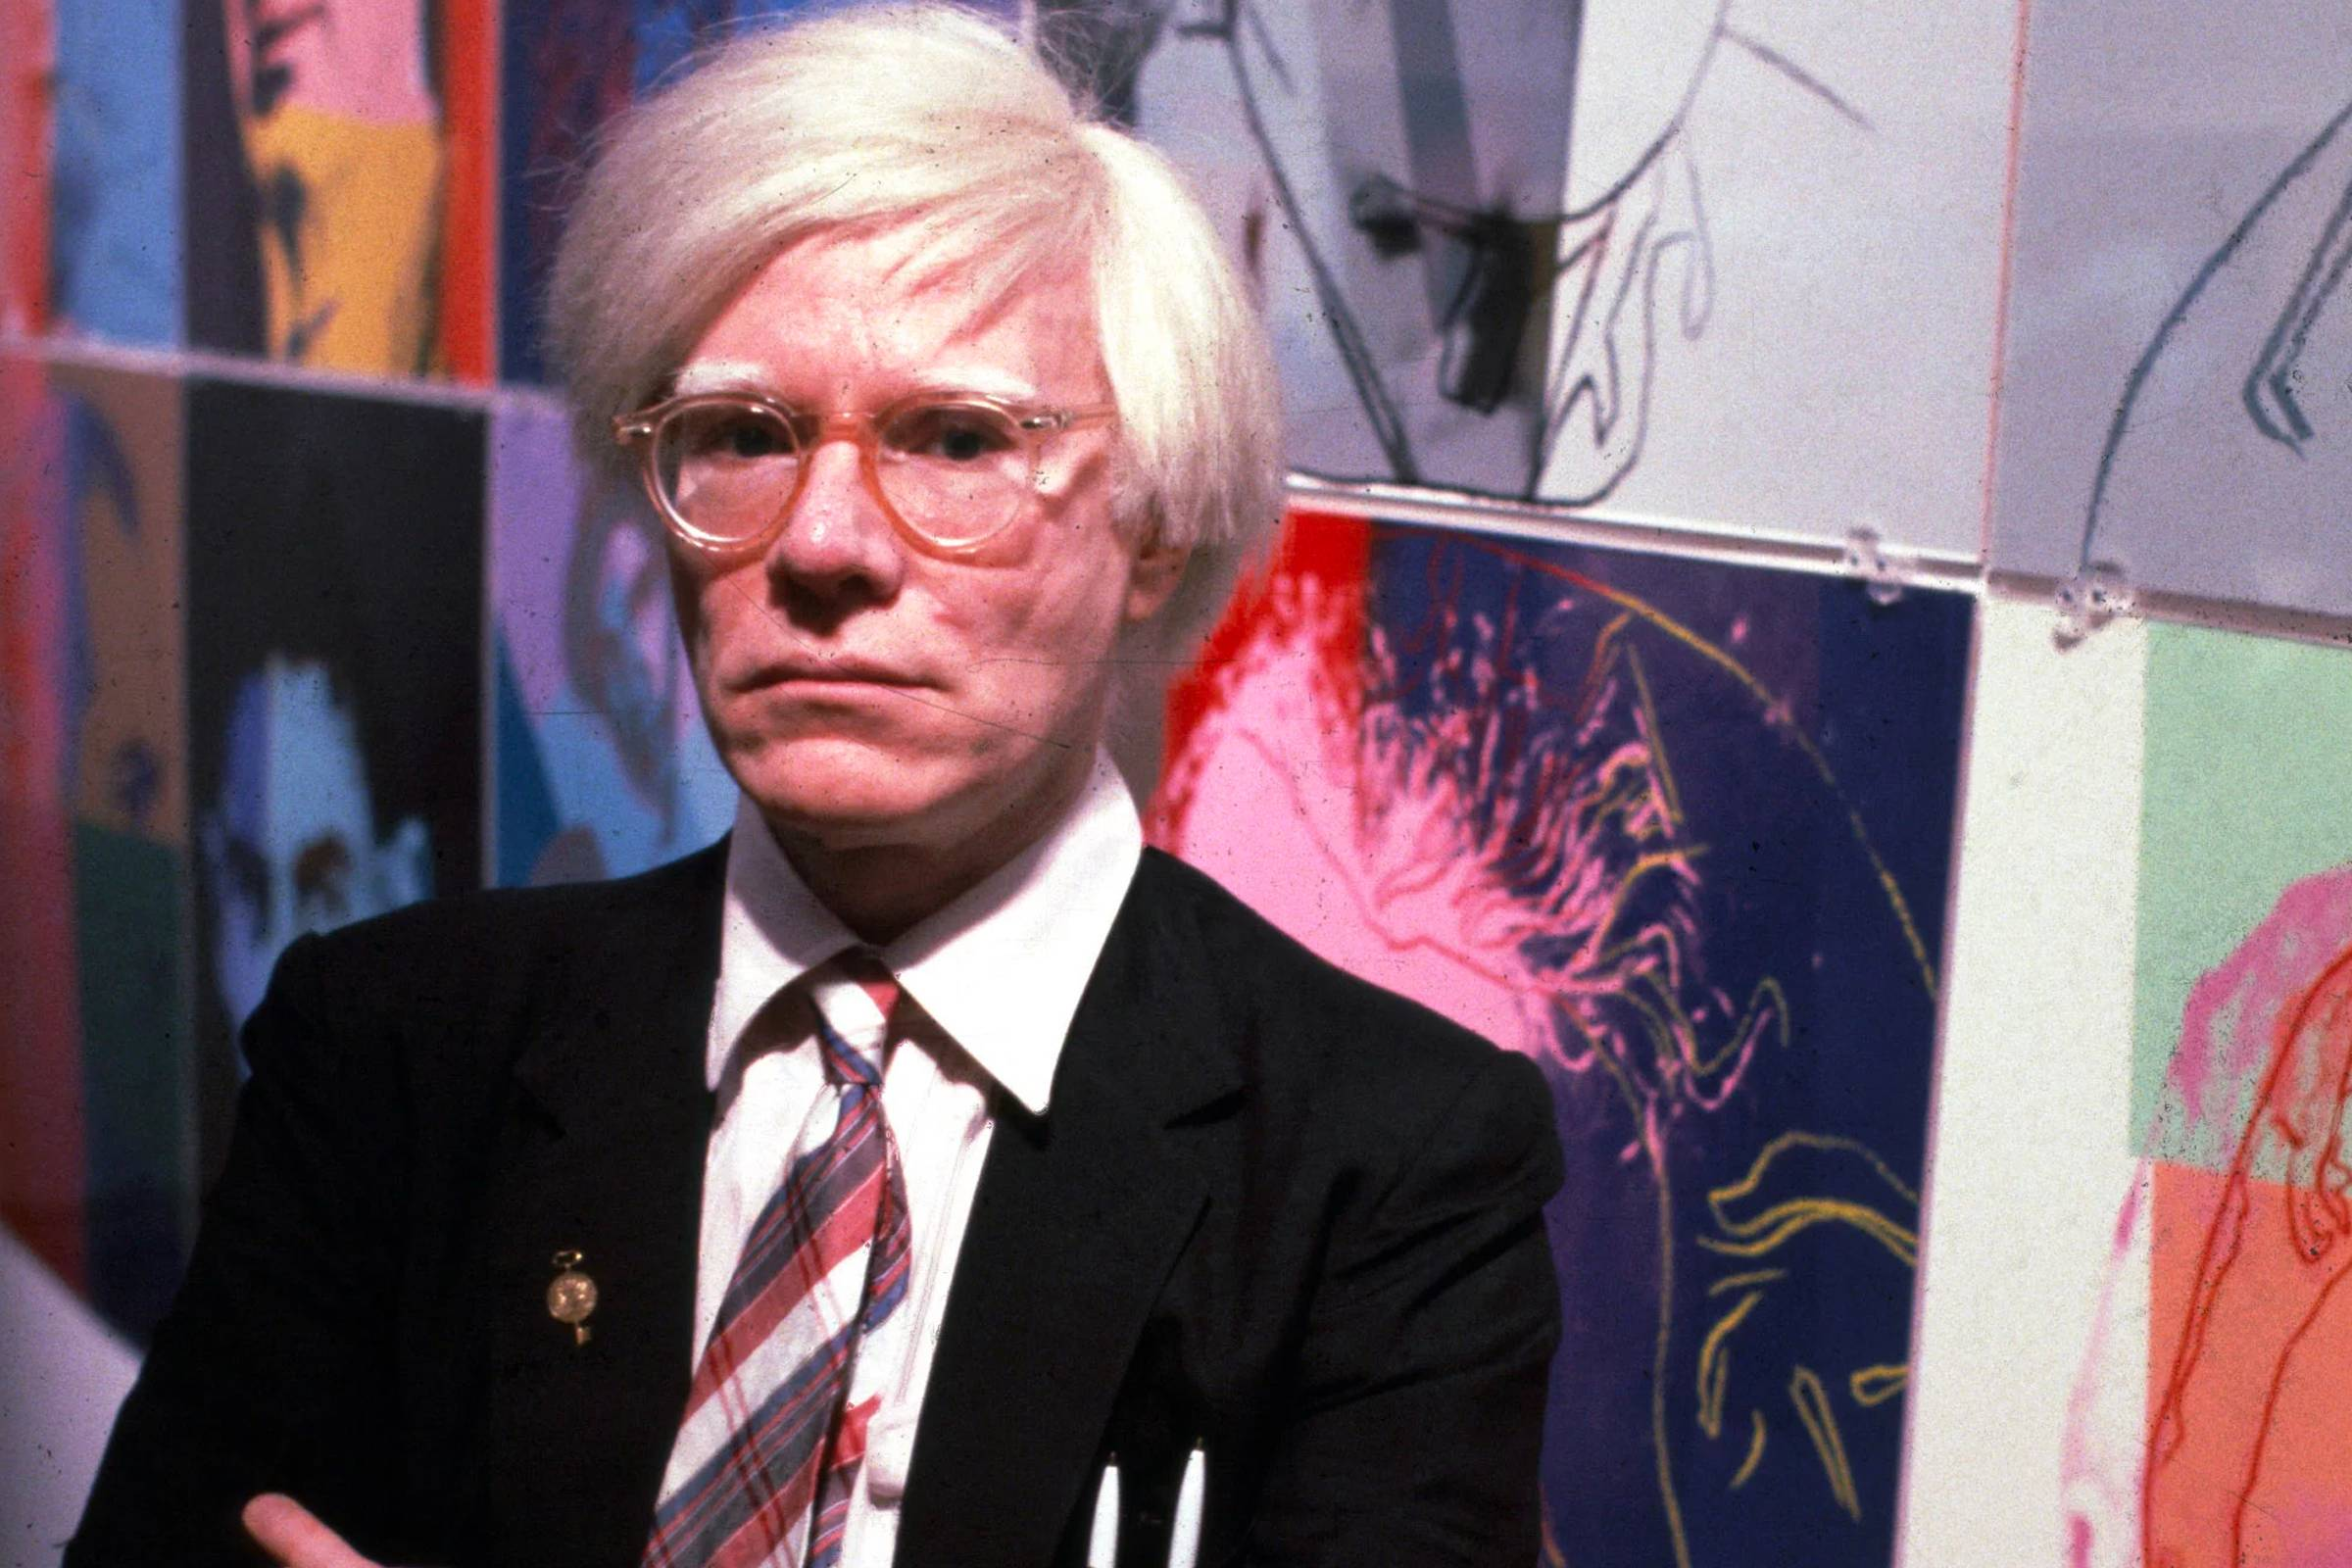 The Amalgamation of an Icon: Andy Warhol